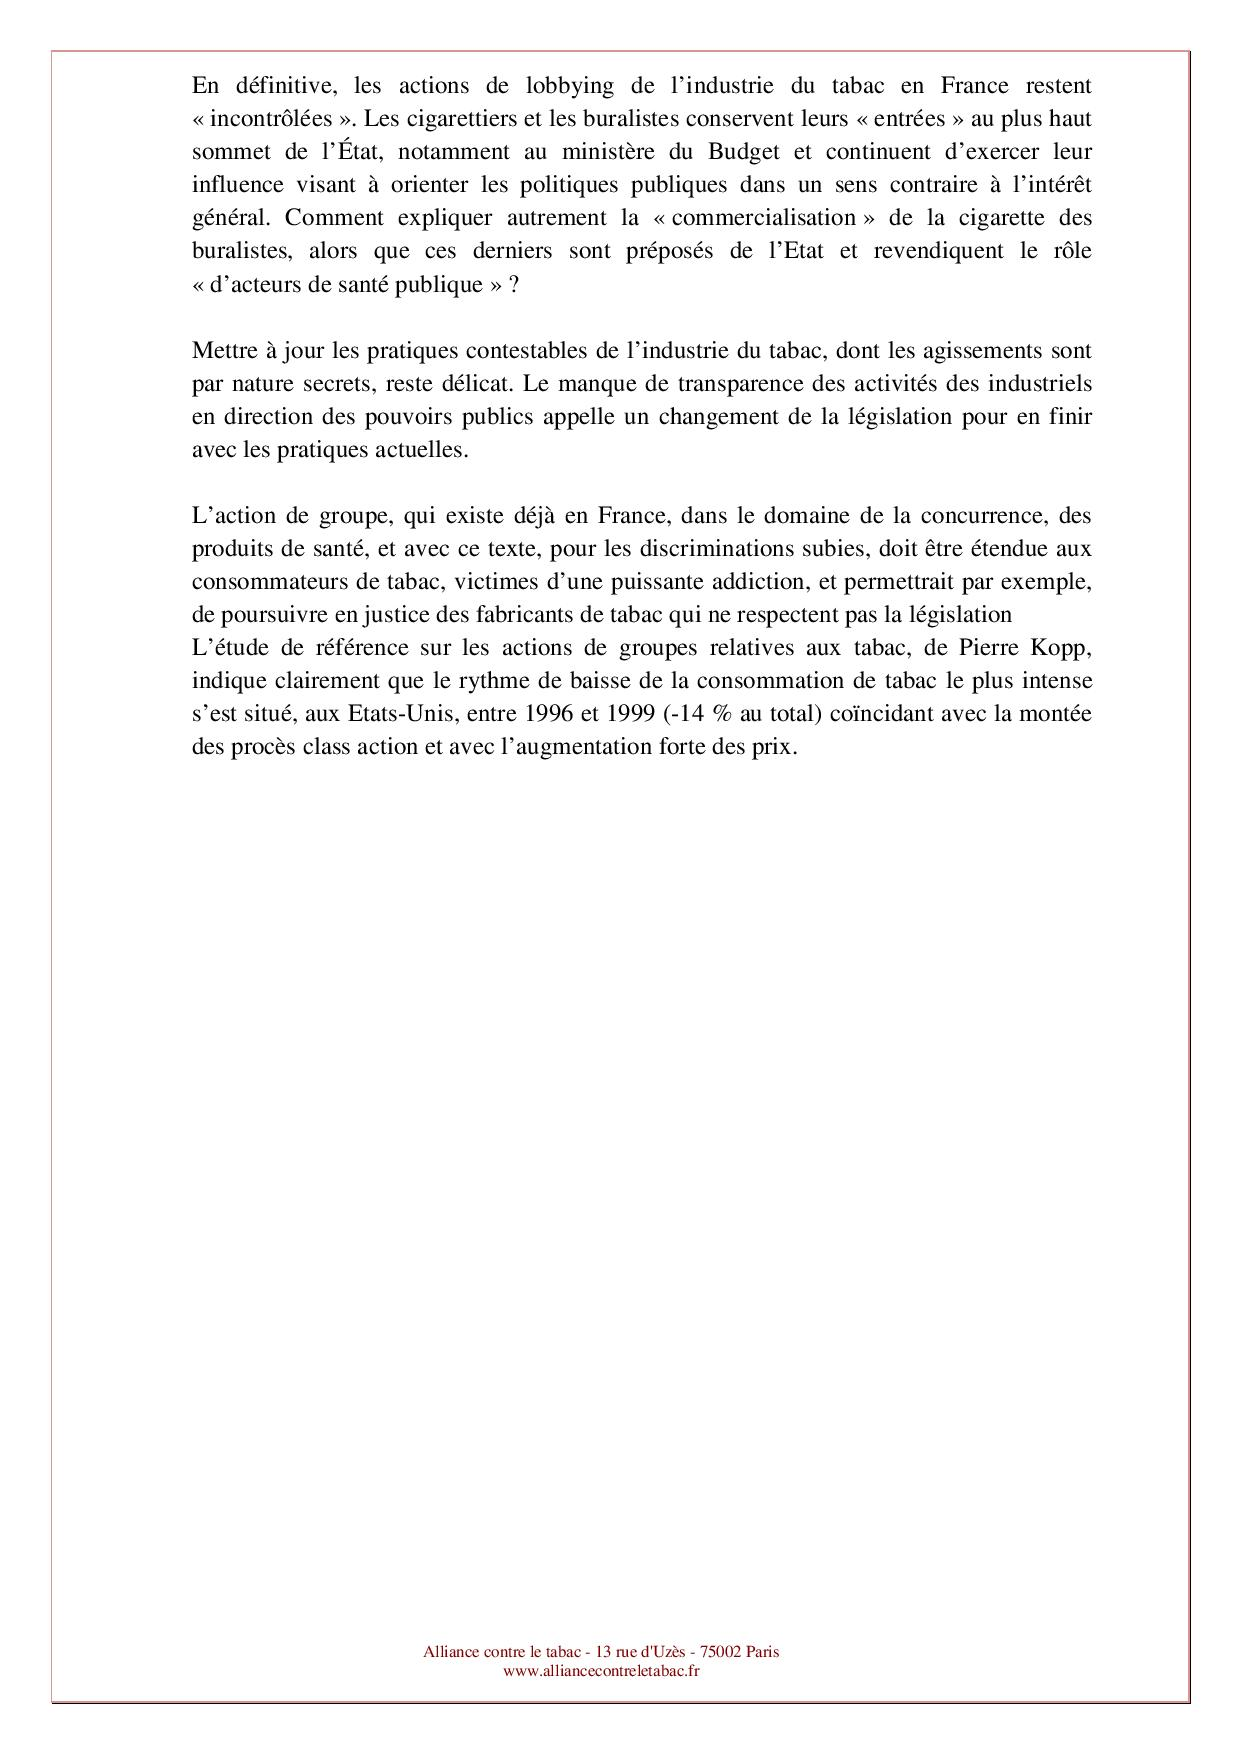 Alliance contre le tabac - DP - 11042017-page-027.jpg